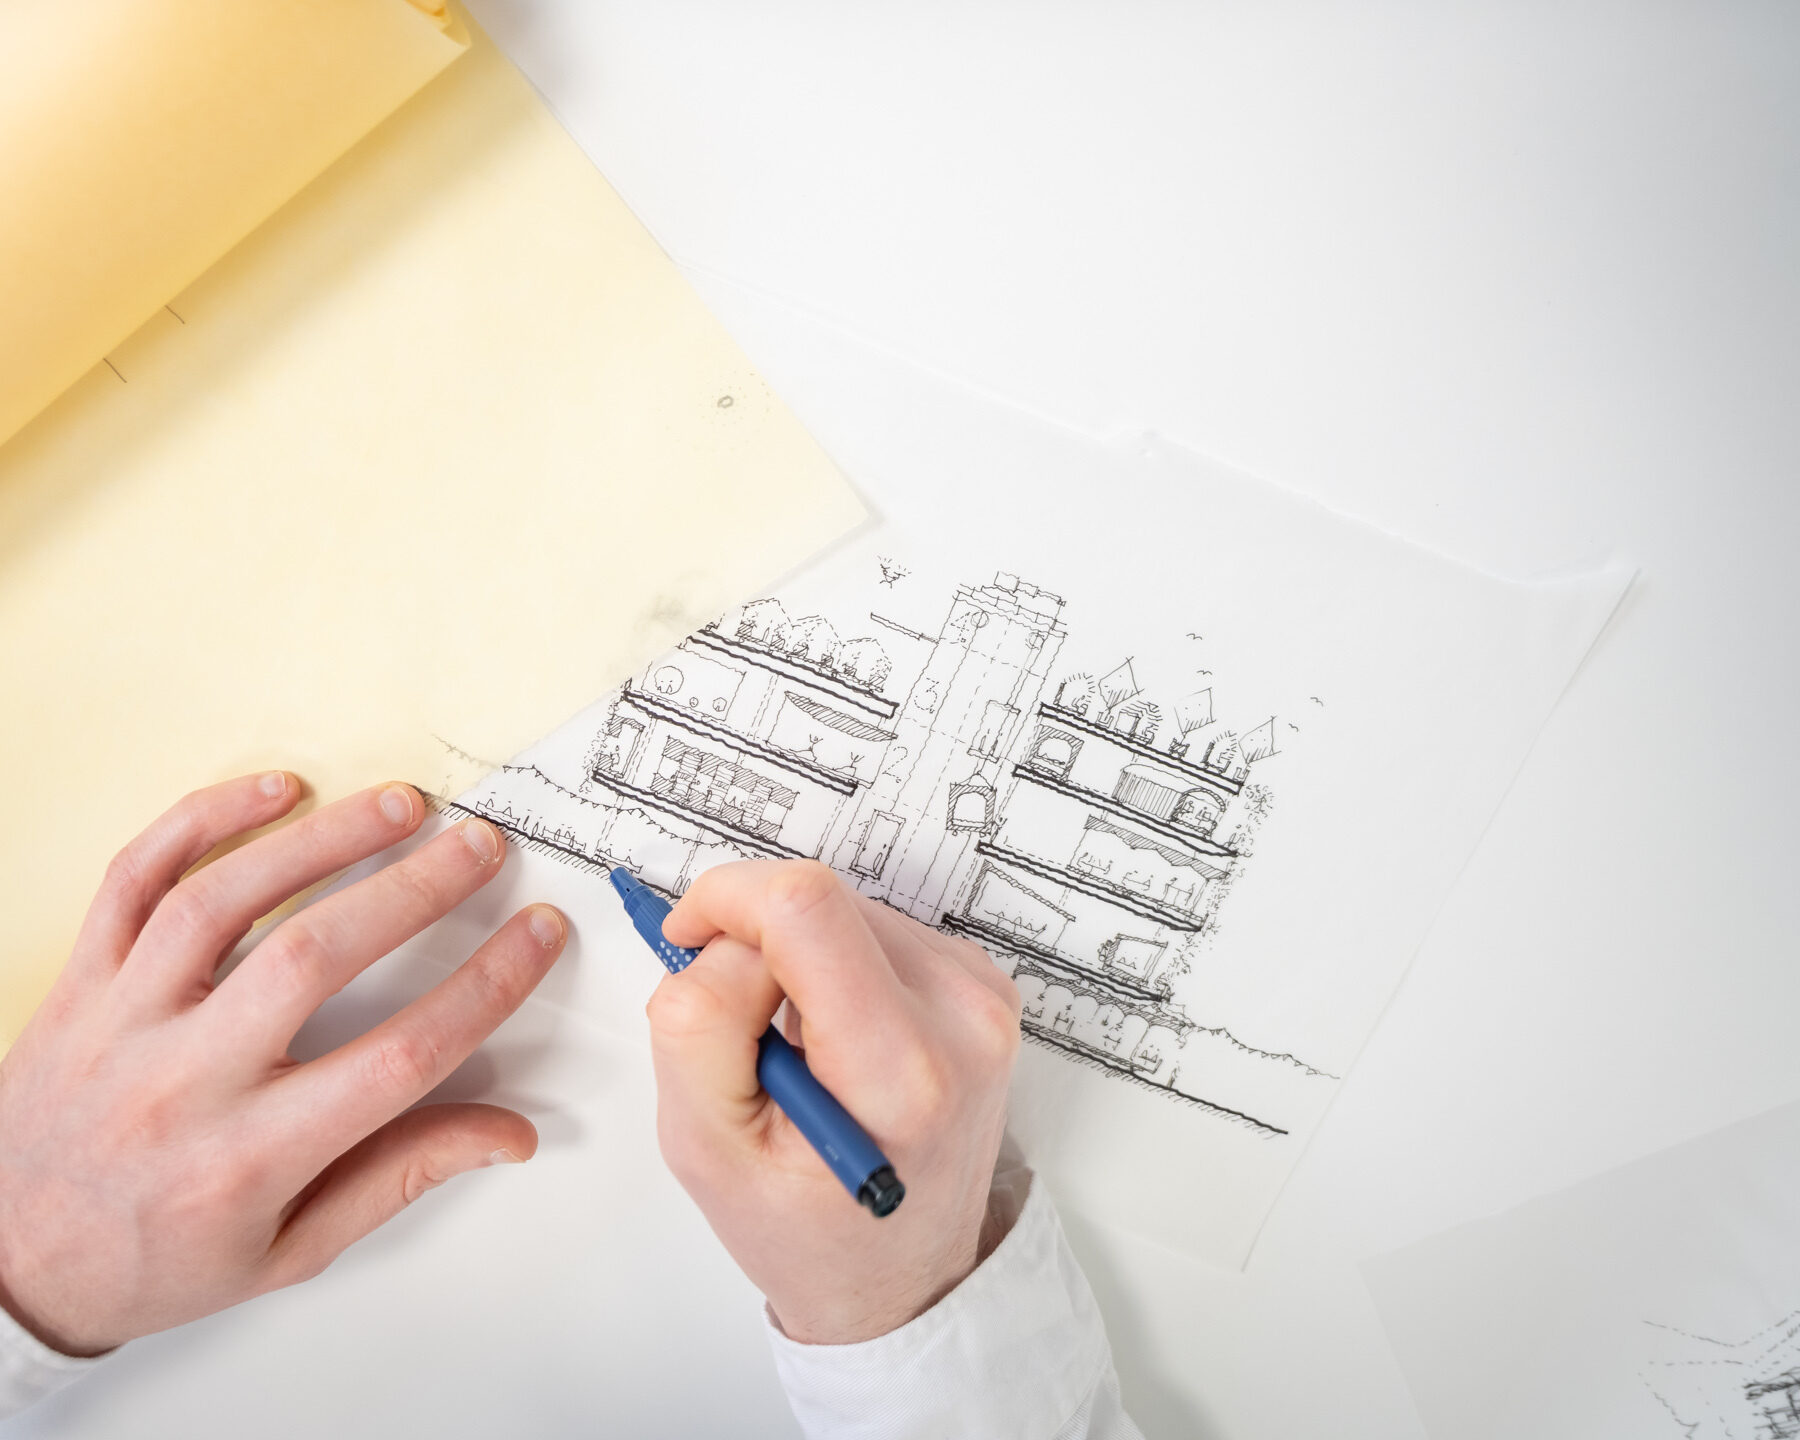 Hands sketching a sustainable building model